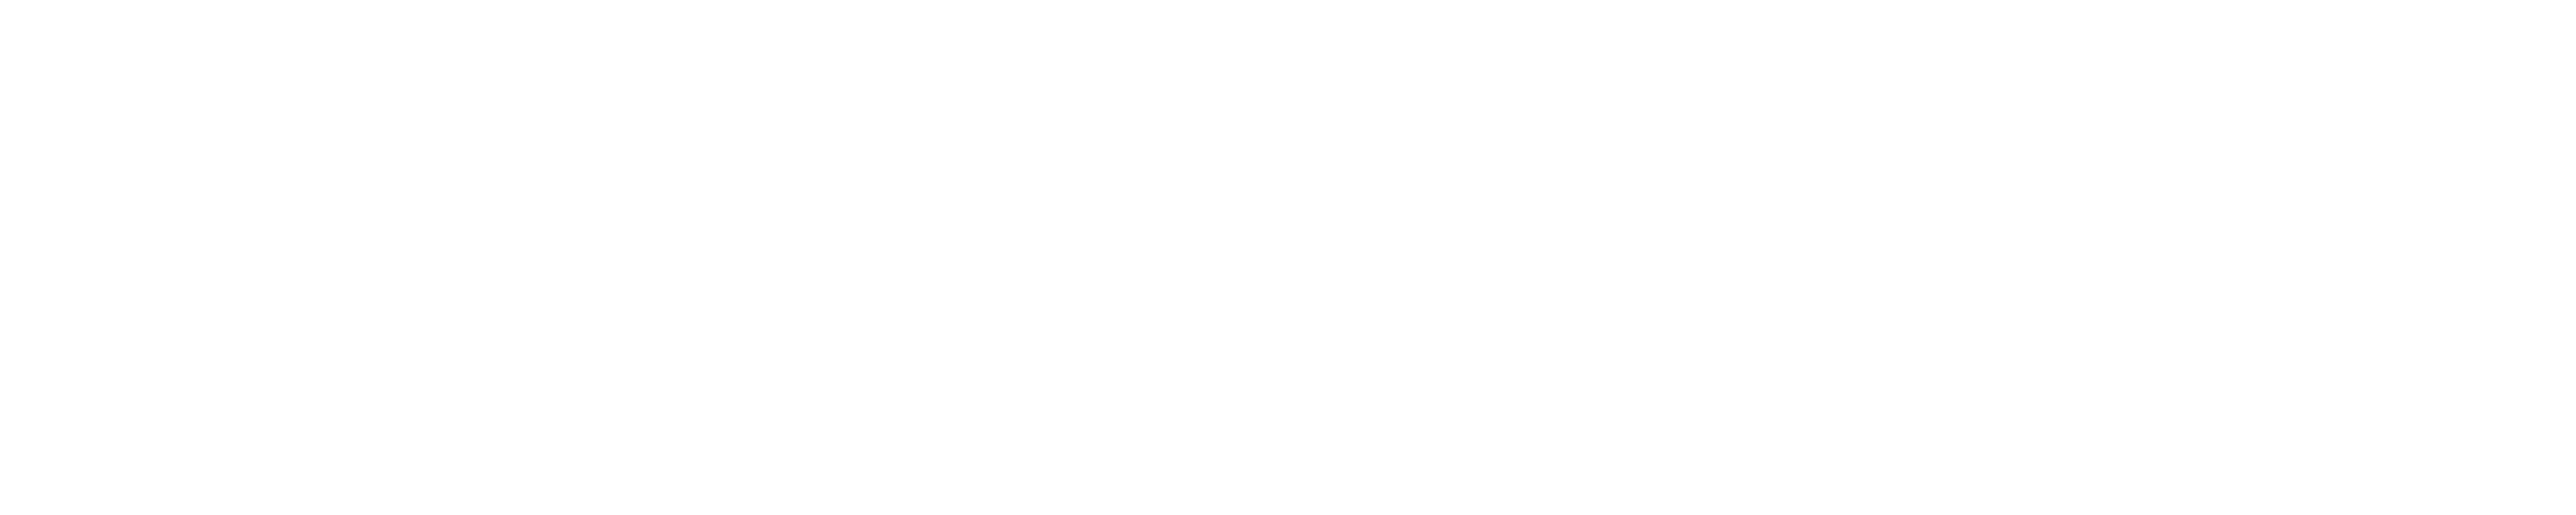 centravance-logos--logo-inverted-rgb